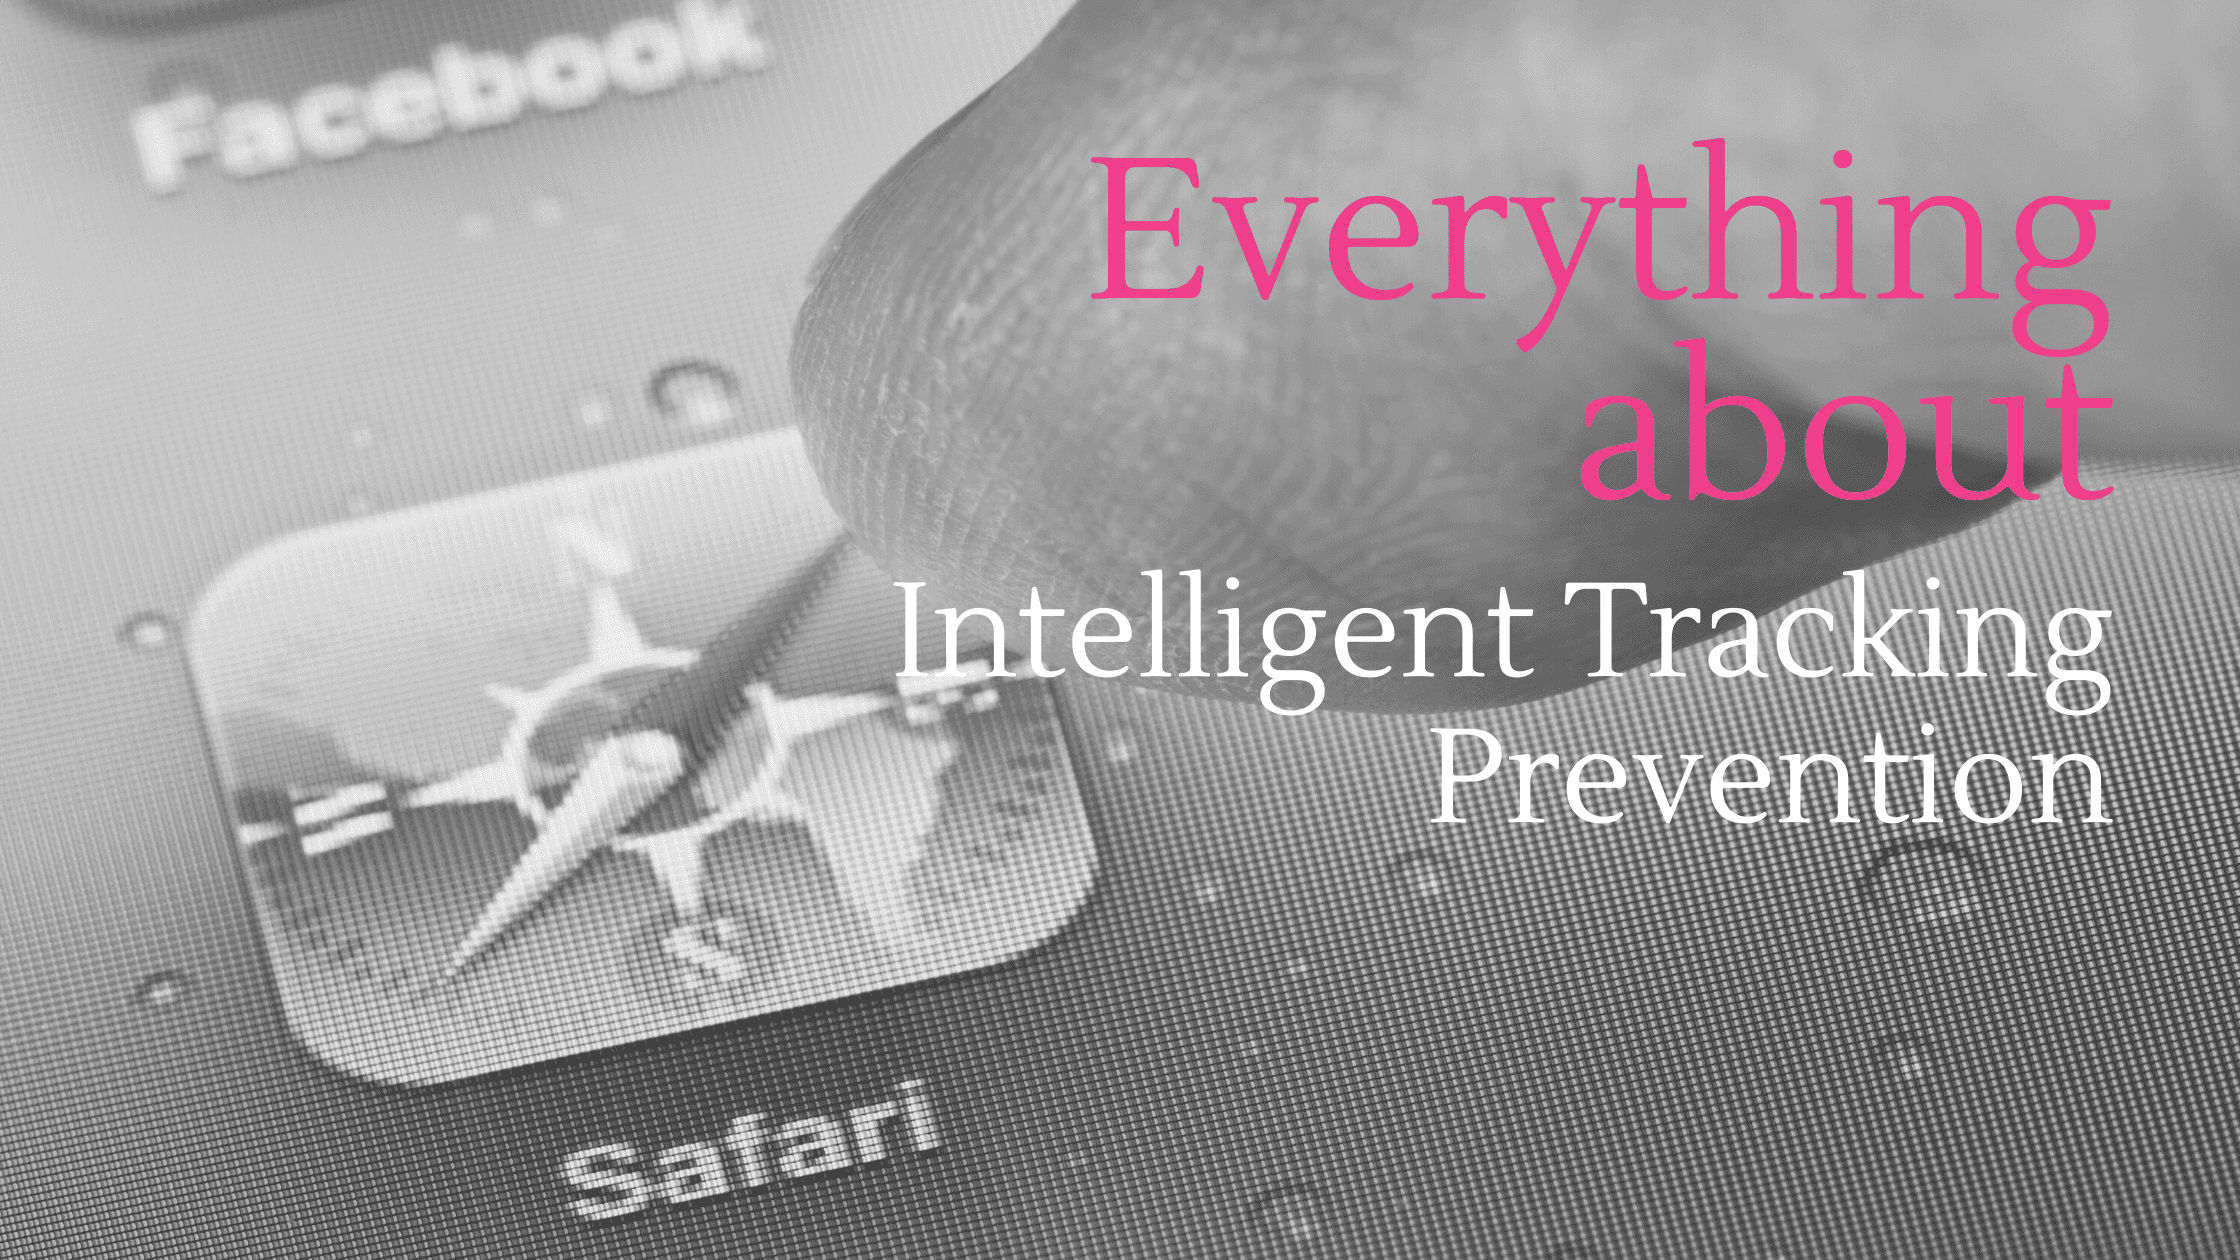 Intelligent Tracking Prevention (ITP) with tag management